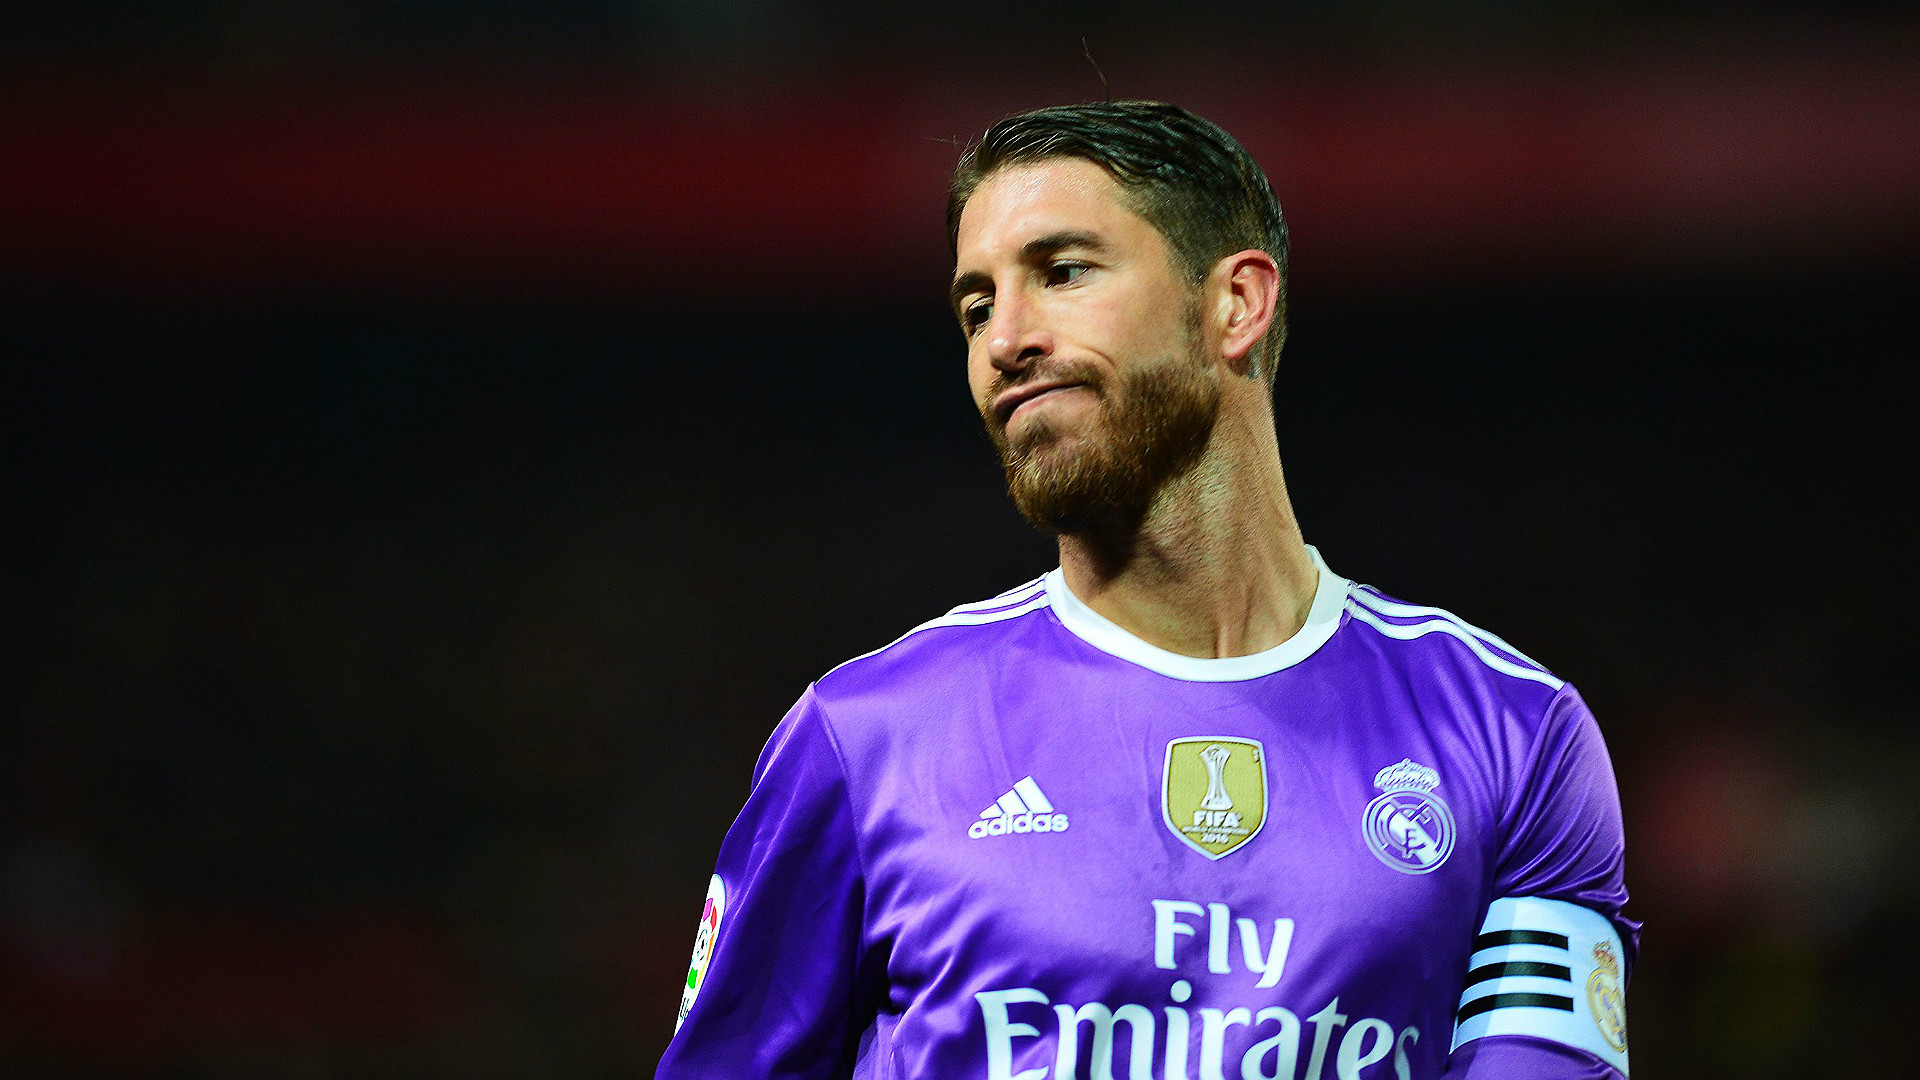 After 40 unbeaten, time to start all over again for Real Madrid